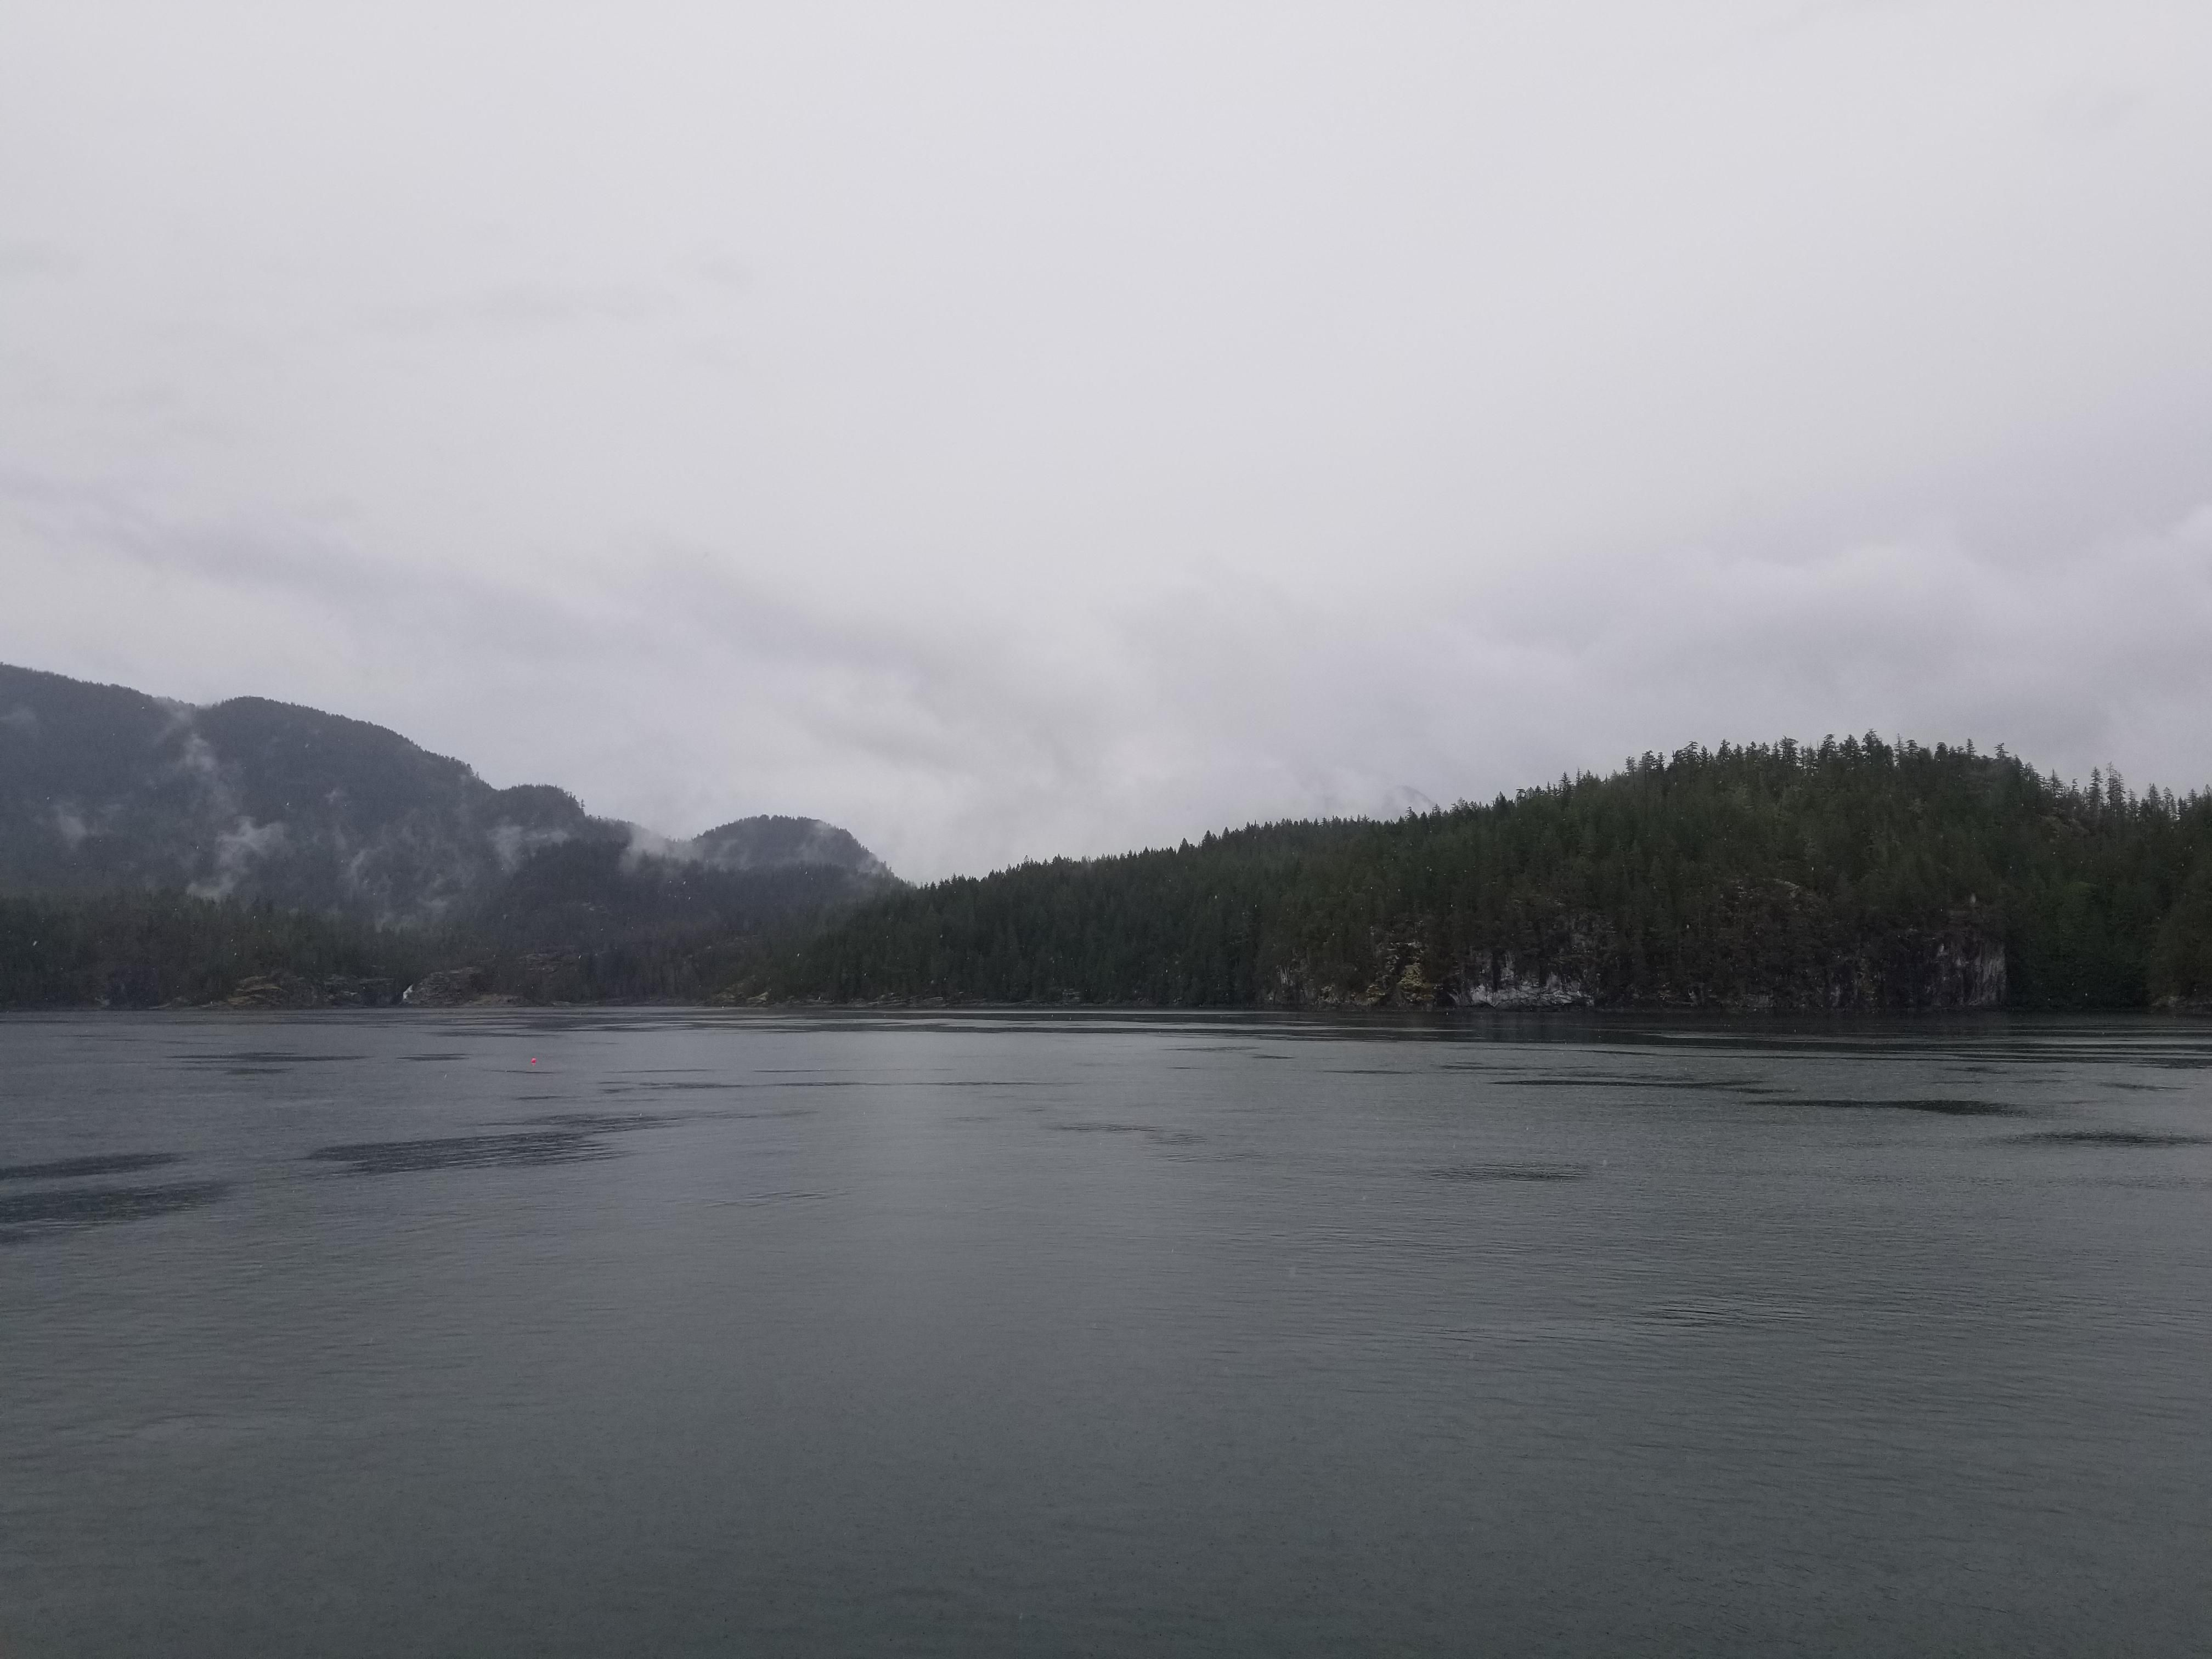 Desolation Sound Bc On An Overcast Day Oc 4032x3024 Music Indieartist Chicago Overcast Landscape Photographers Landscape Photography